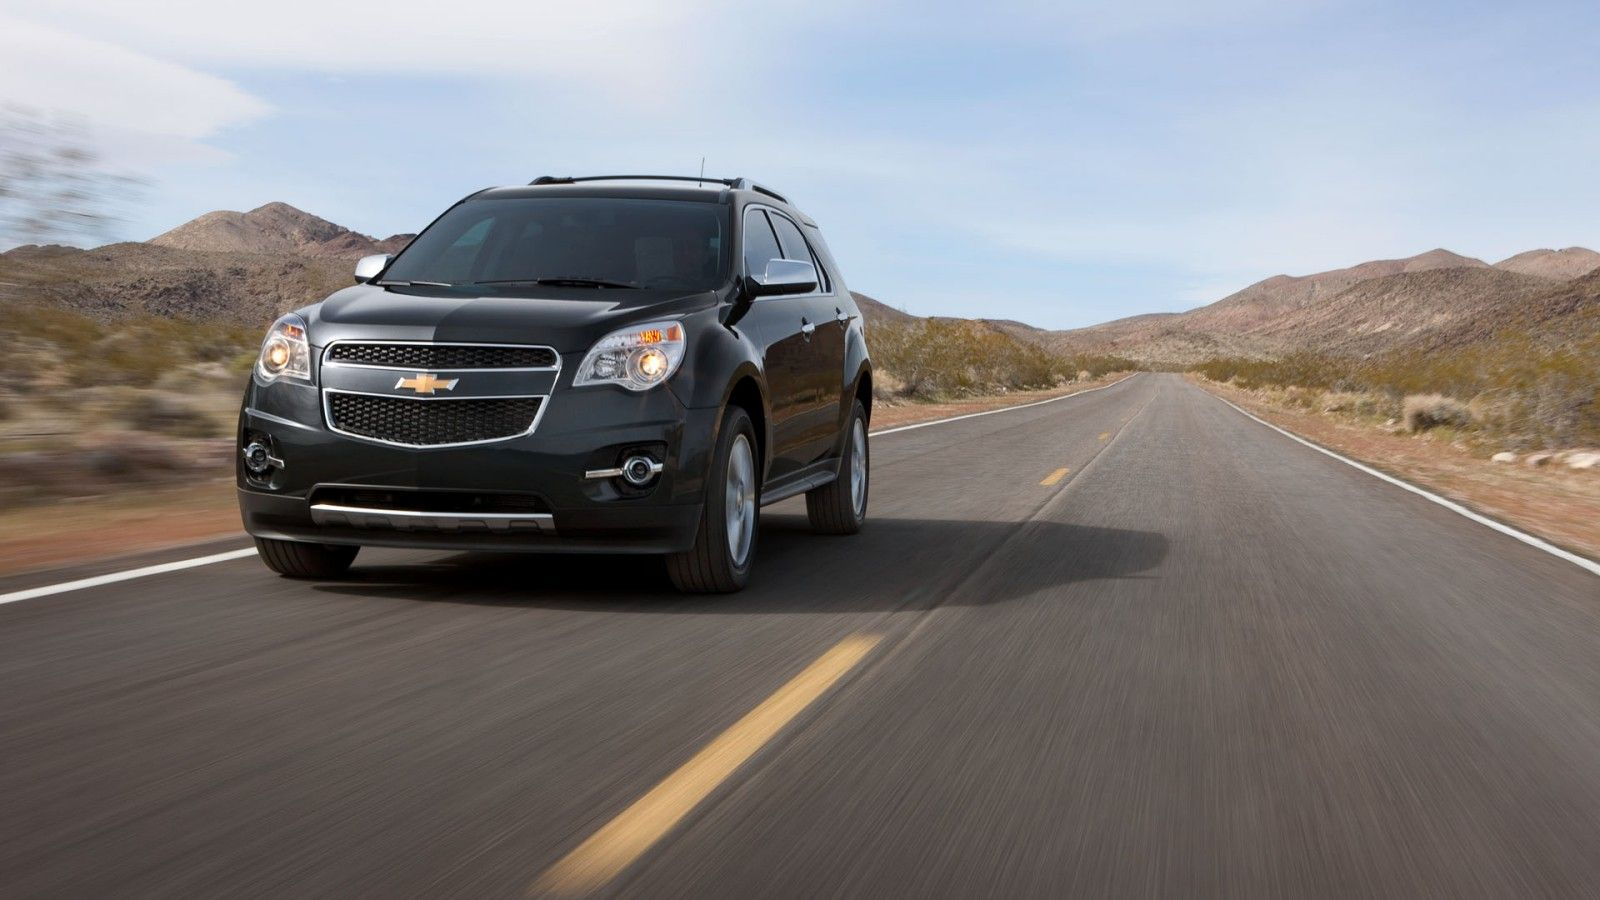 2012 Chevy Equinox Crossover SUV front angle shown in